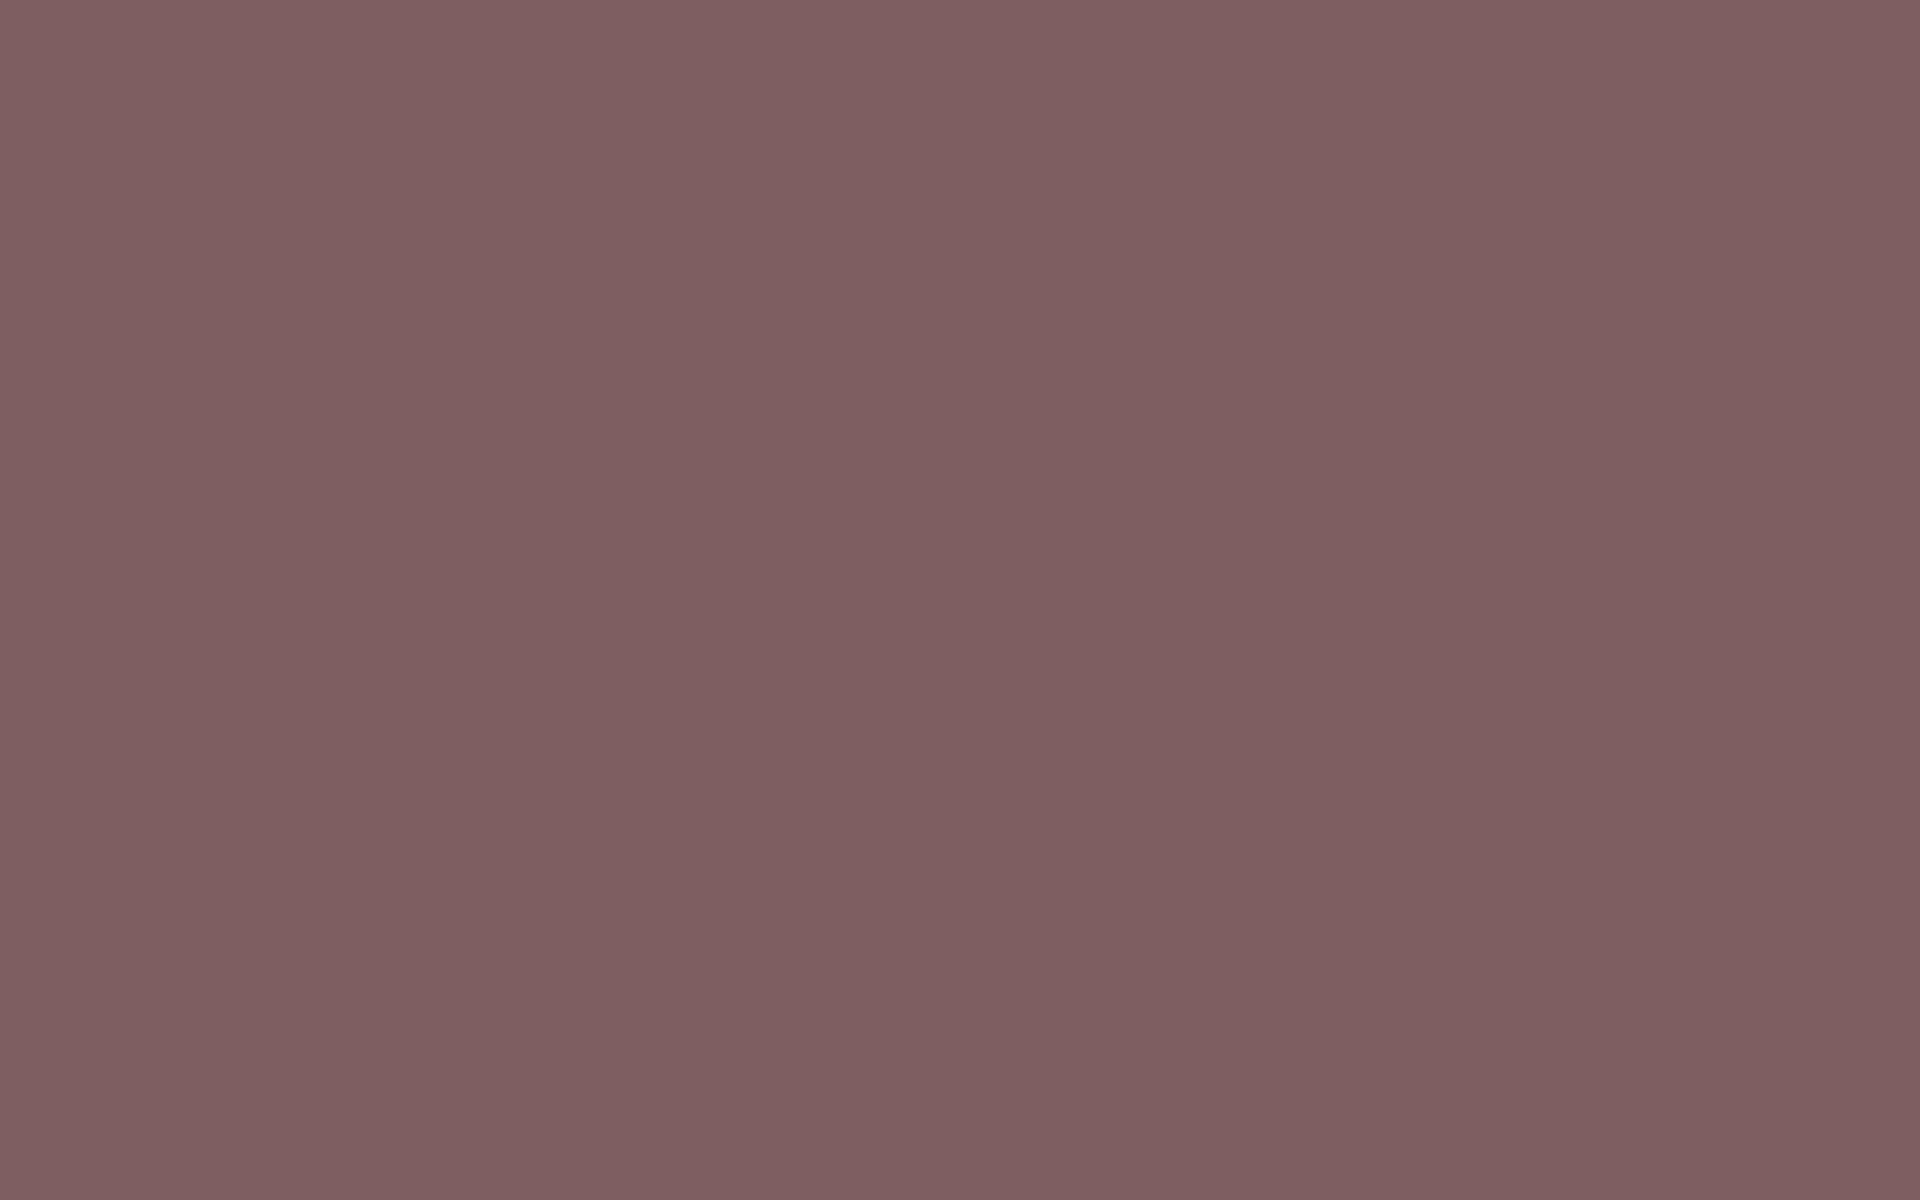 1920x1200 Deep Taupe Solid Color Background